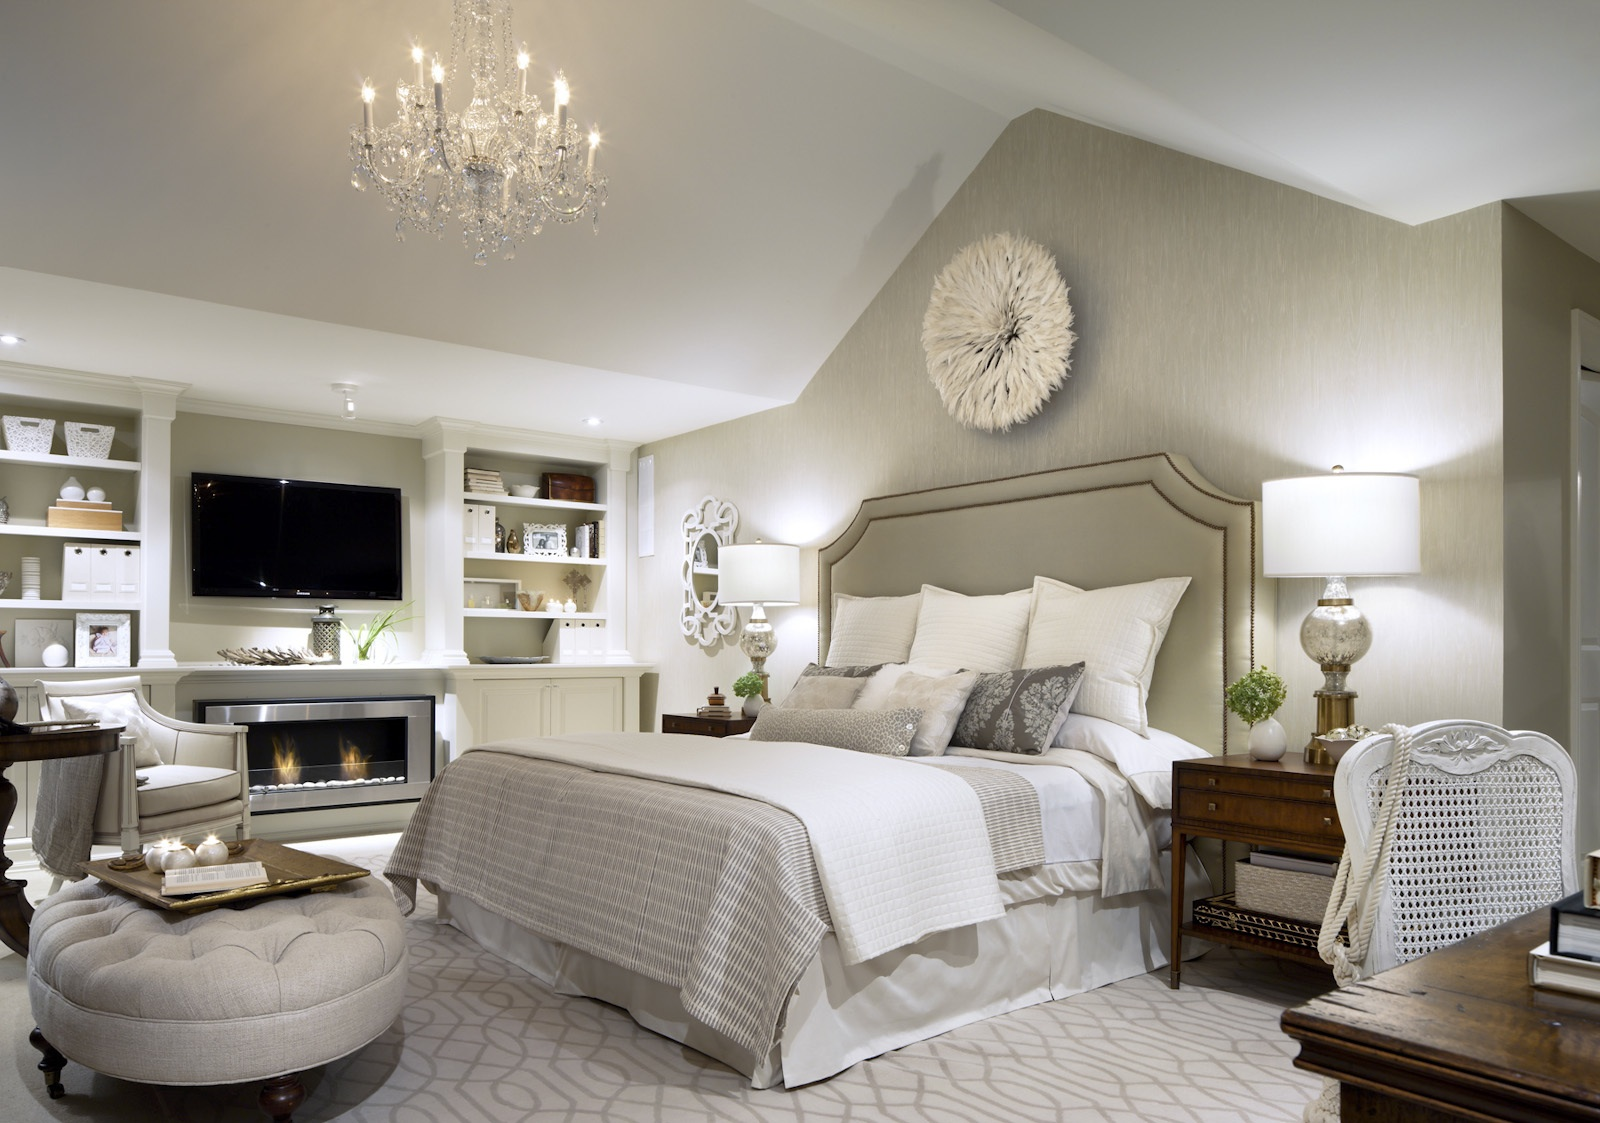 candice olson bedroom design photos photo - 1